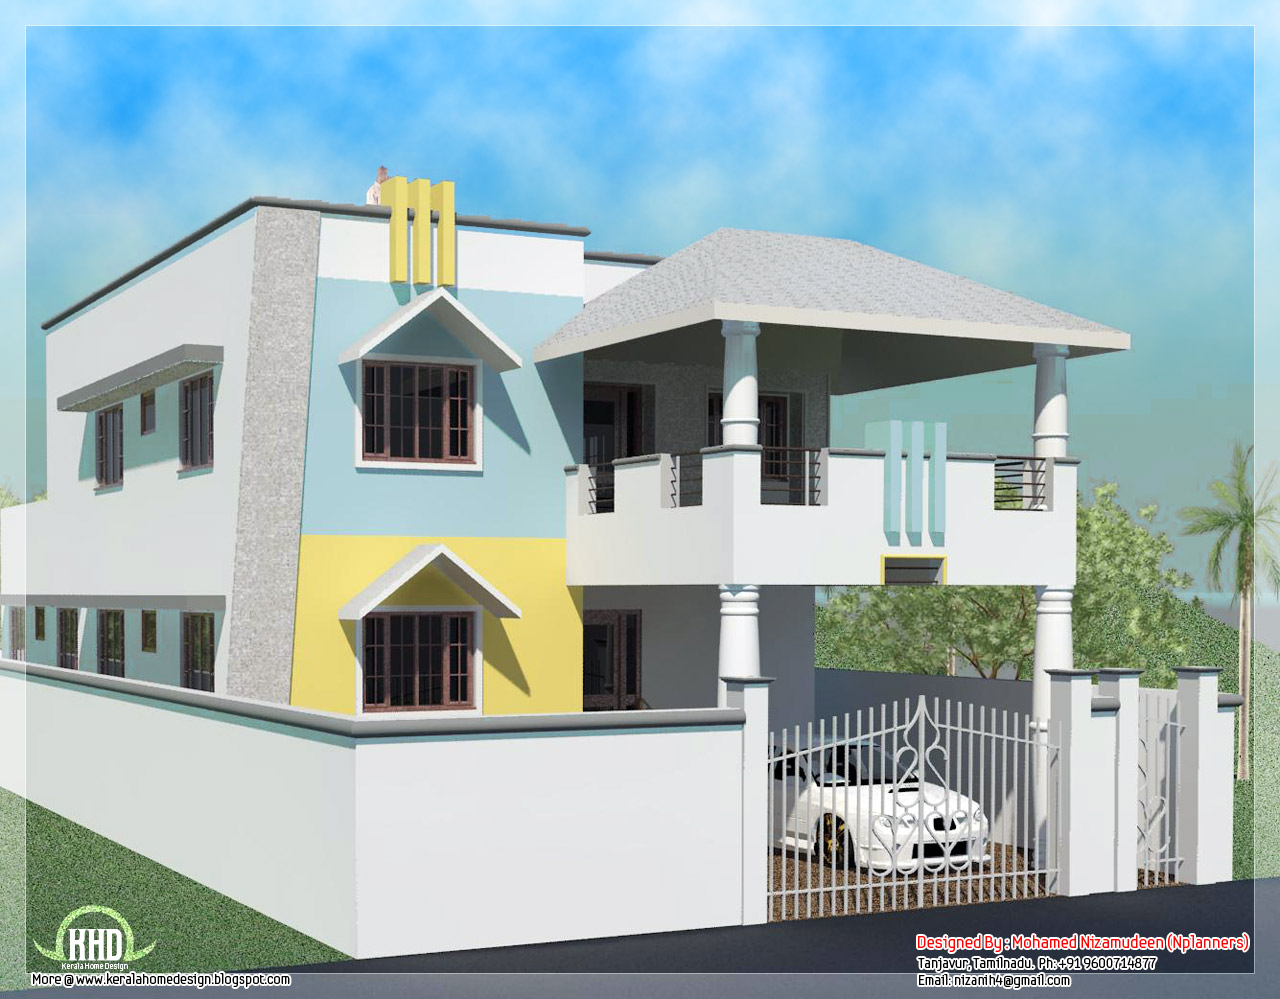 2200 sq feet minimalist tamilnadu style house kerala for House plans for 1200 sq ft in tamilnadu